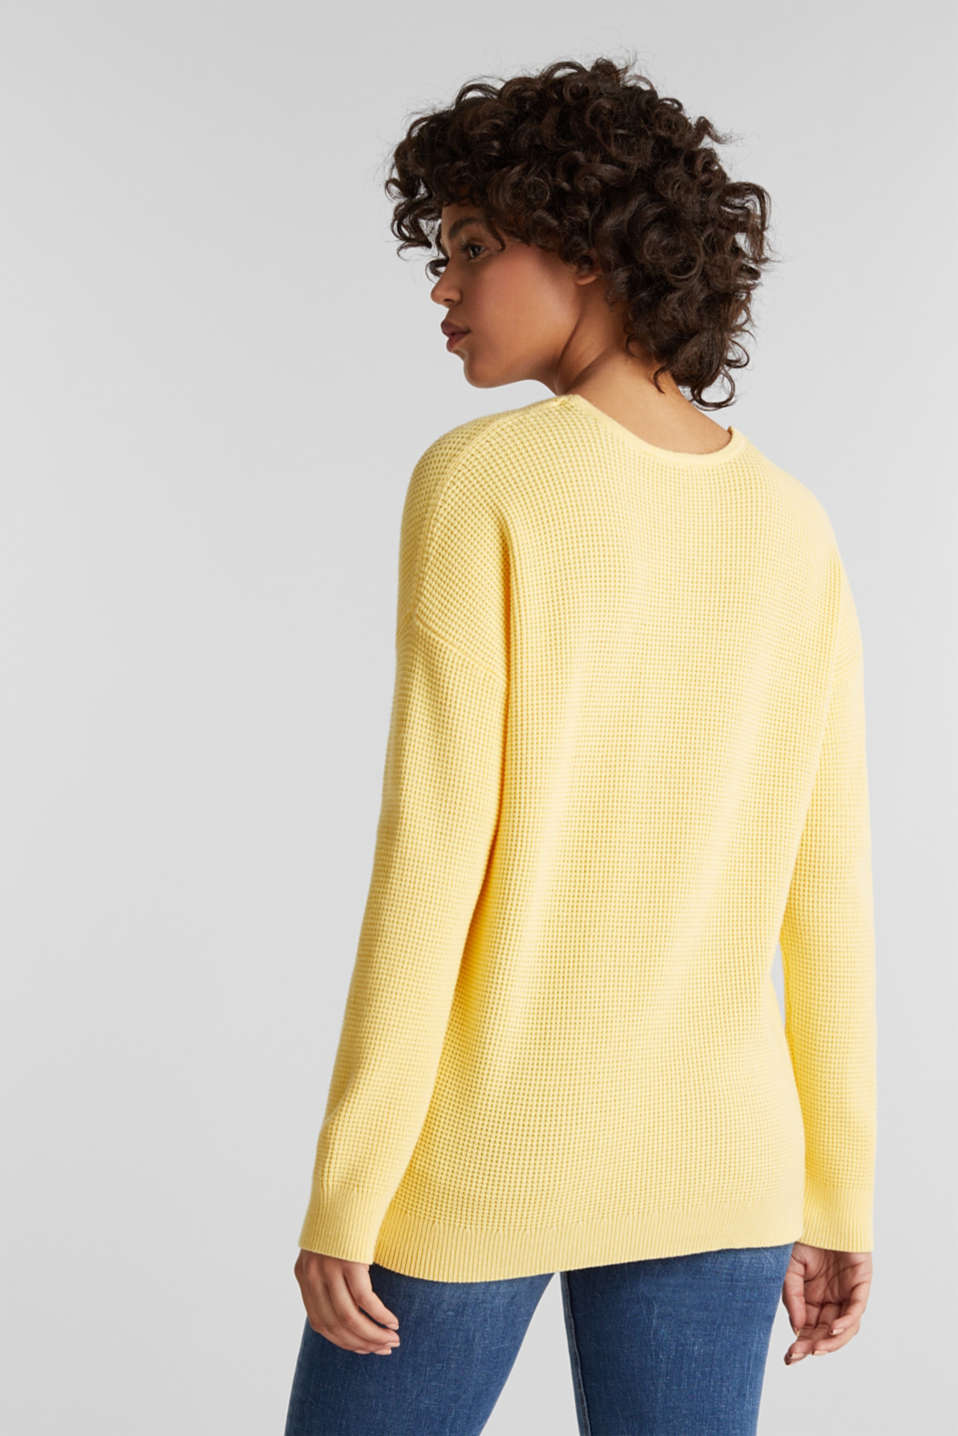 Jumper with a rice grain texture, YELLOW, detail image number 3